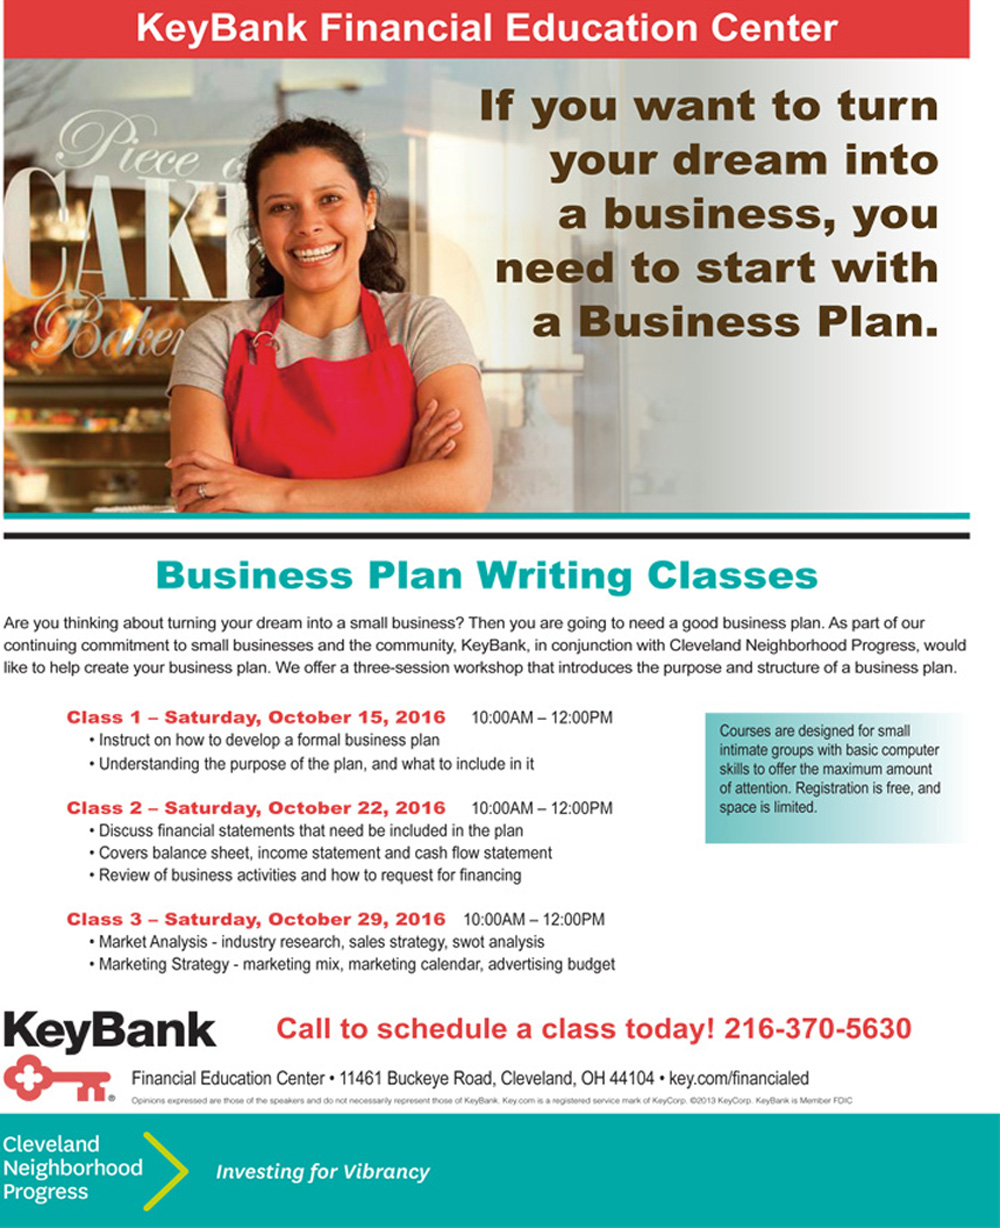 Business Plan Writing Classes - KeyBank Education Center